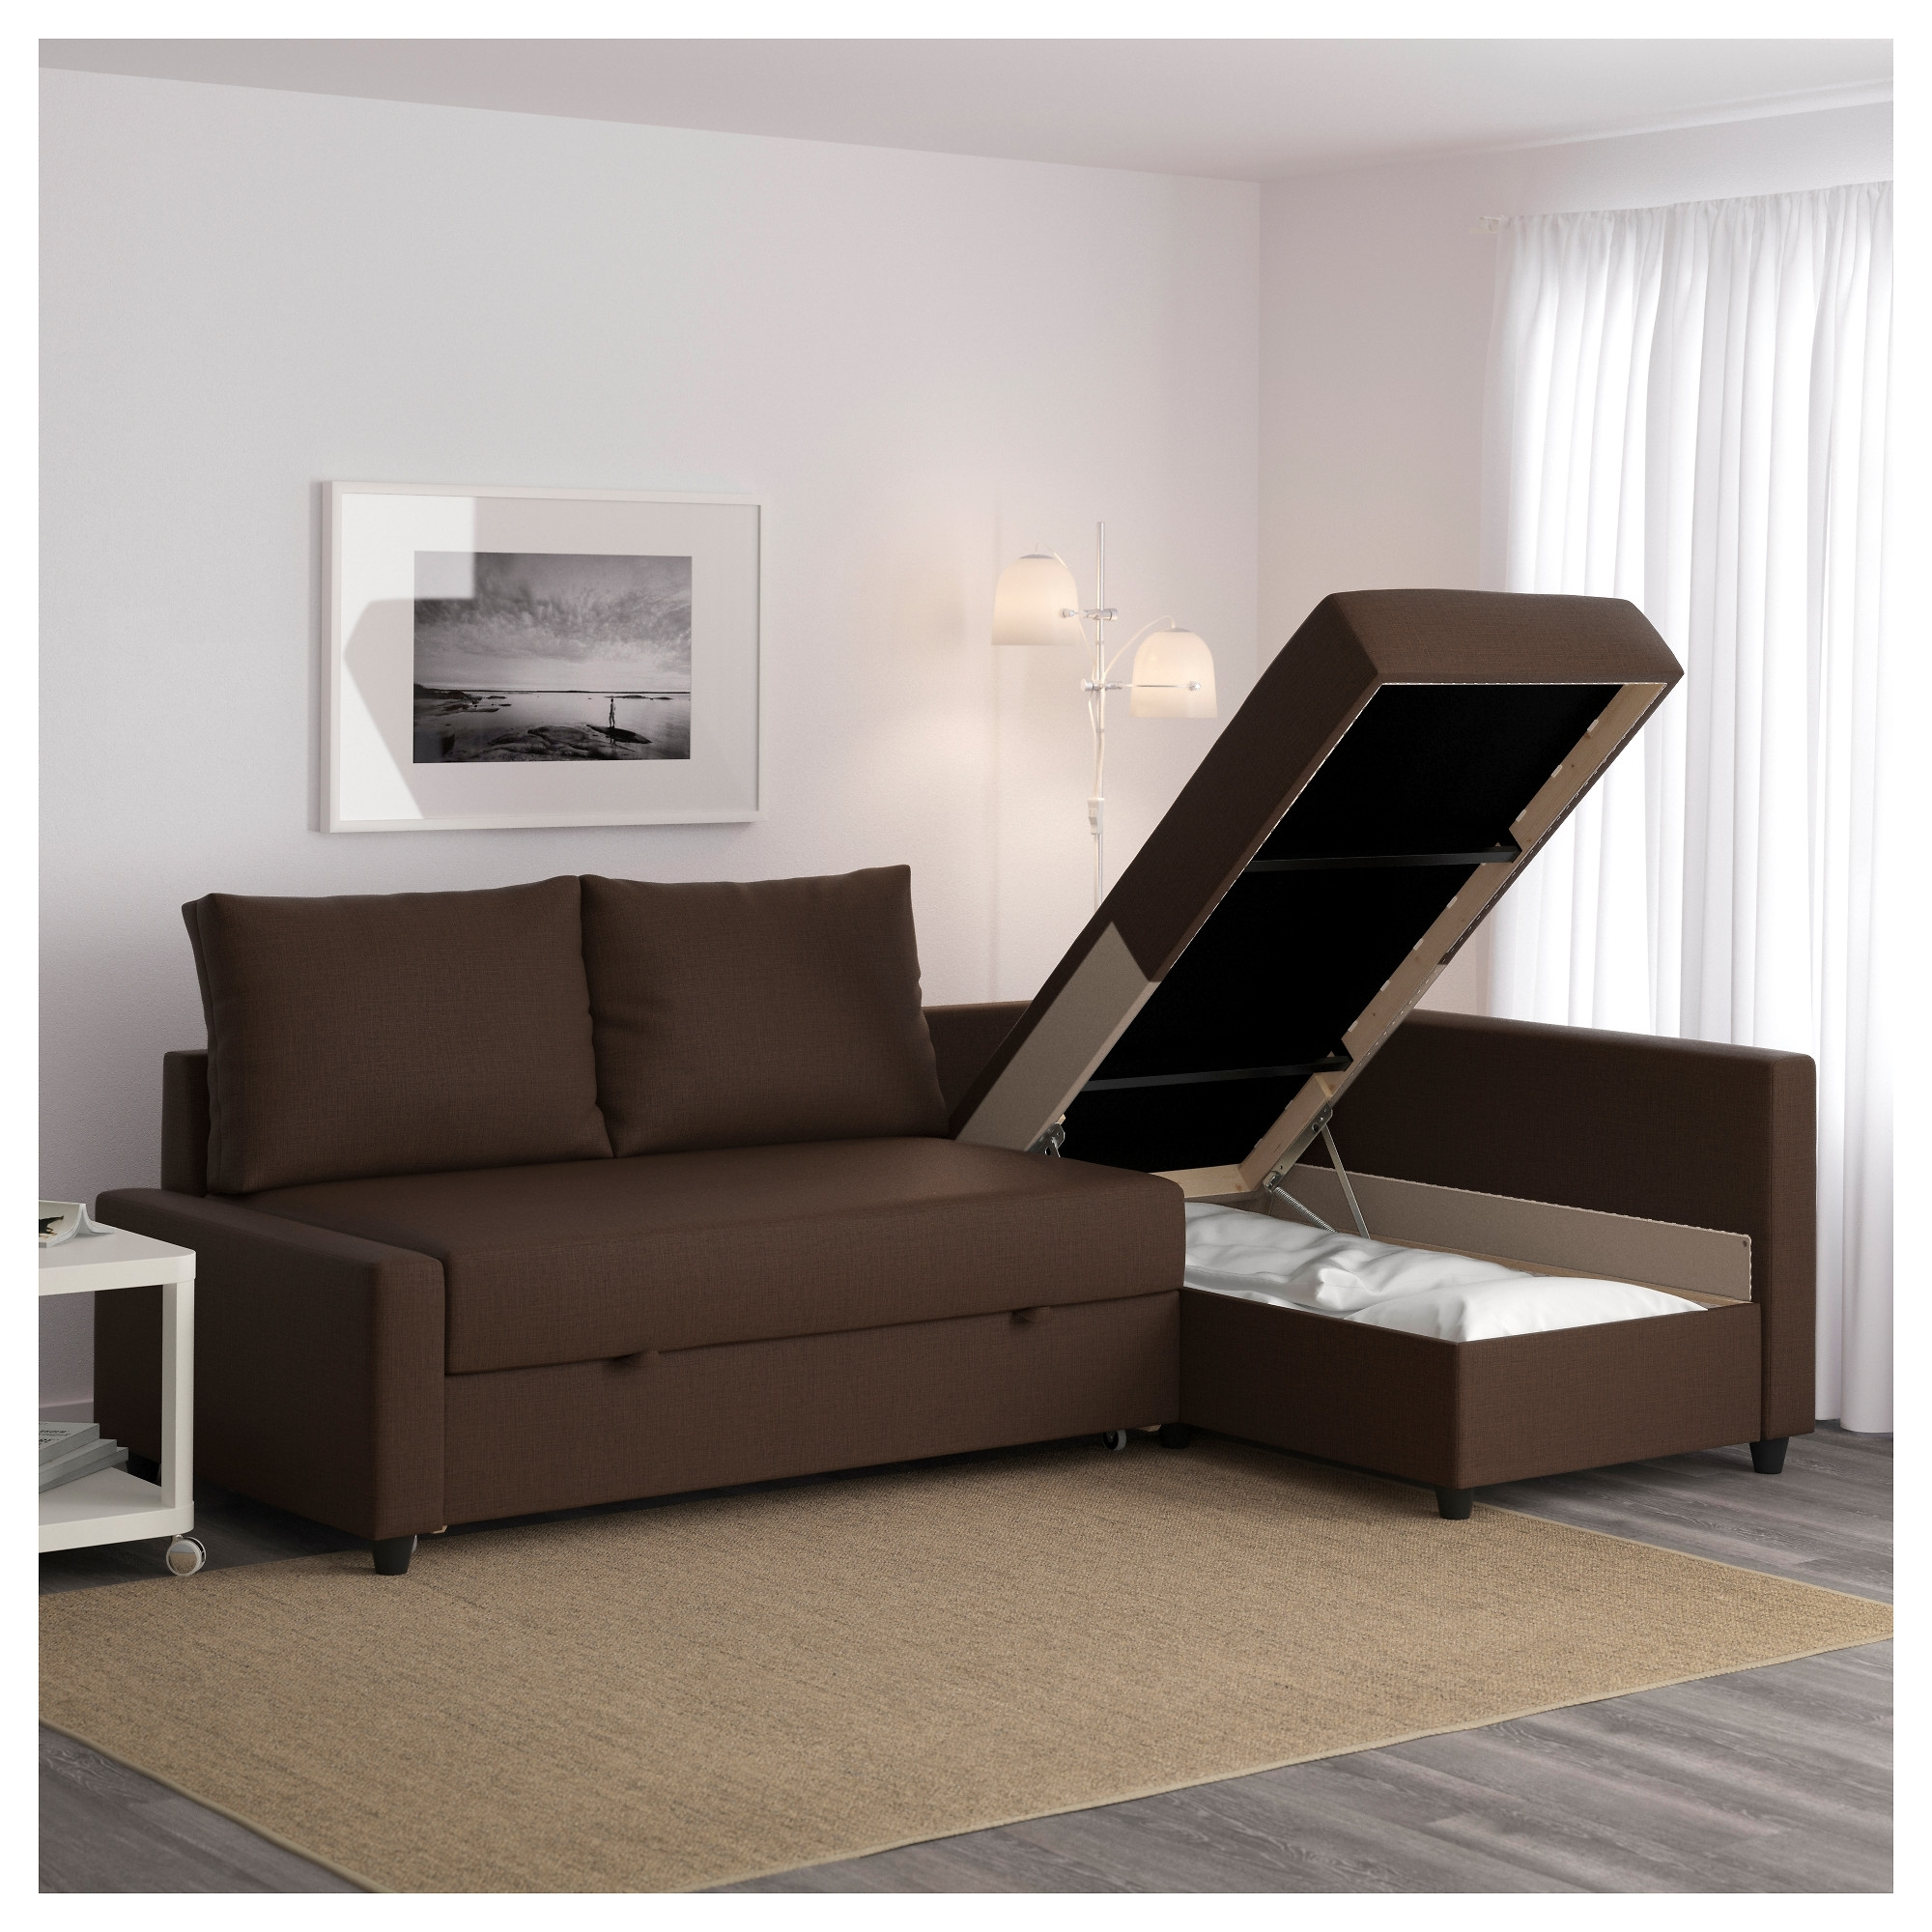 Well Known Friheten Corner Sofa Bed With Storage Skiftebo Brown – Ikea With Regard To Ikea Corner Sofas With Storage (View 5 of 15)